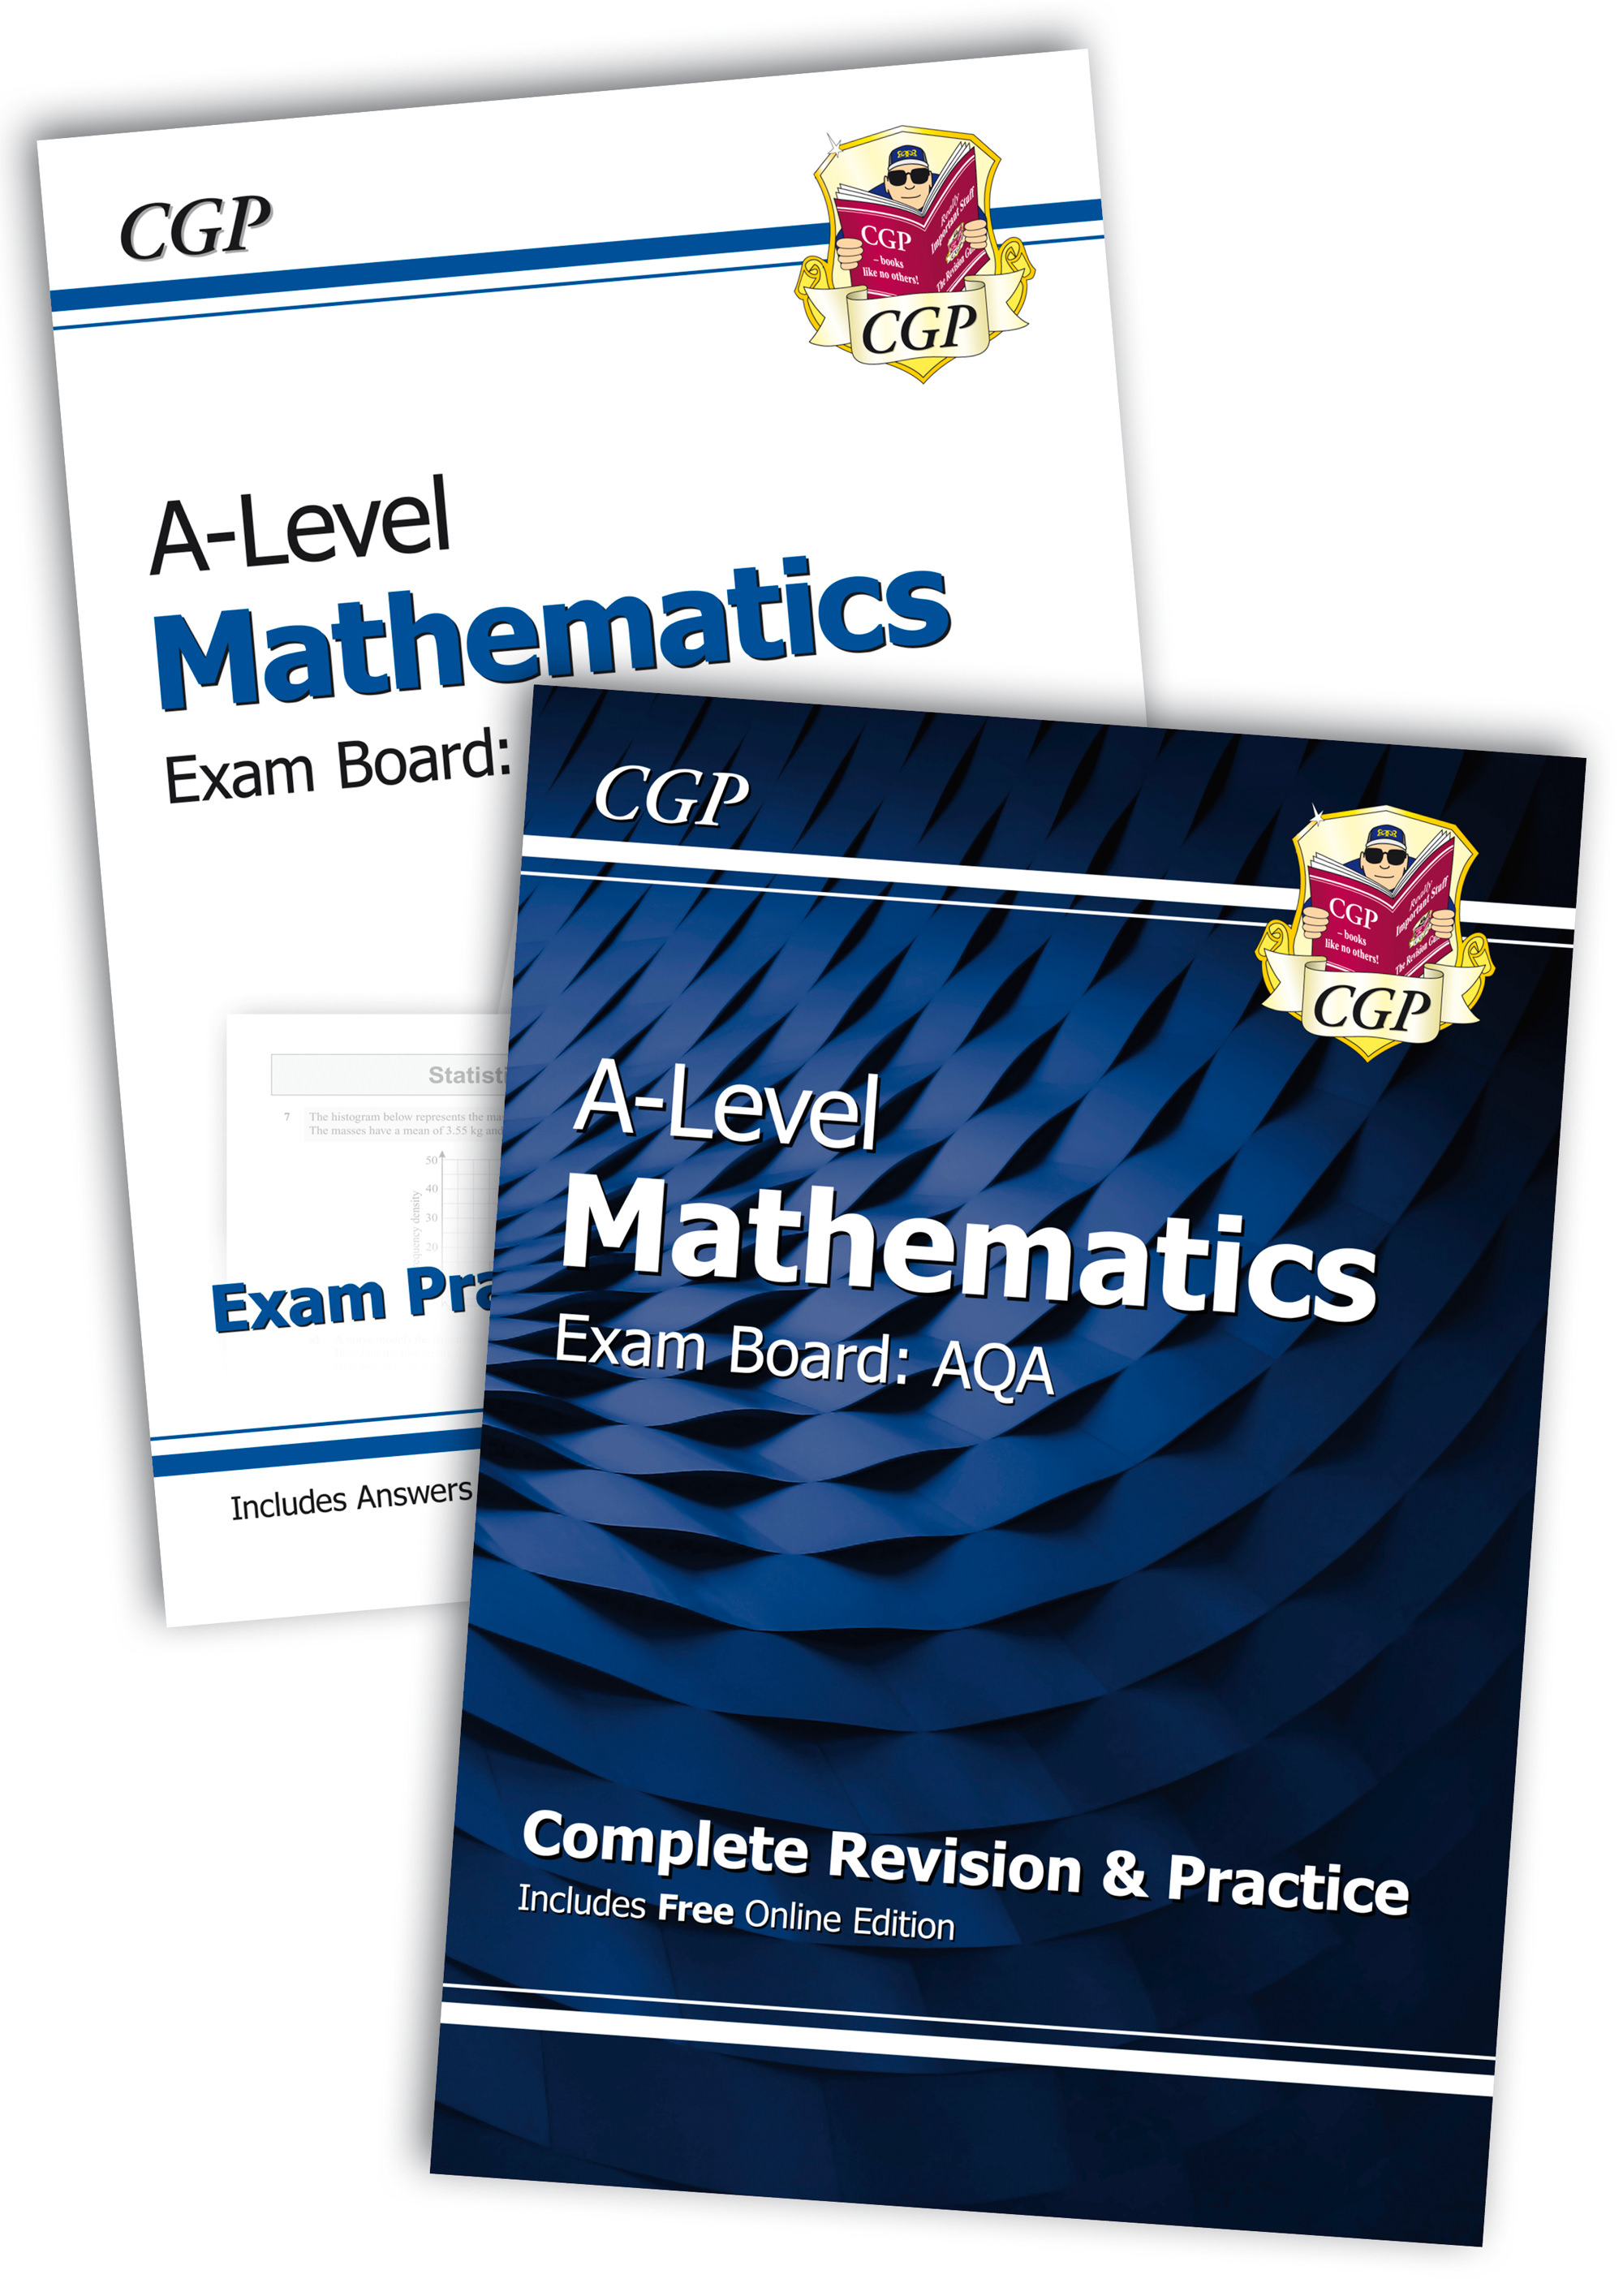 MAHB71 - New Complete Revision and Exam Practice A-Level Maths Bundle: AQA Year 1 & 2